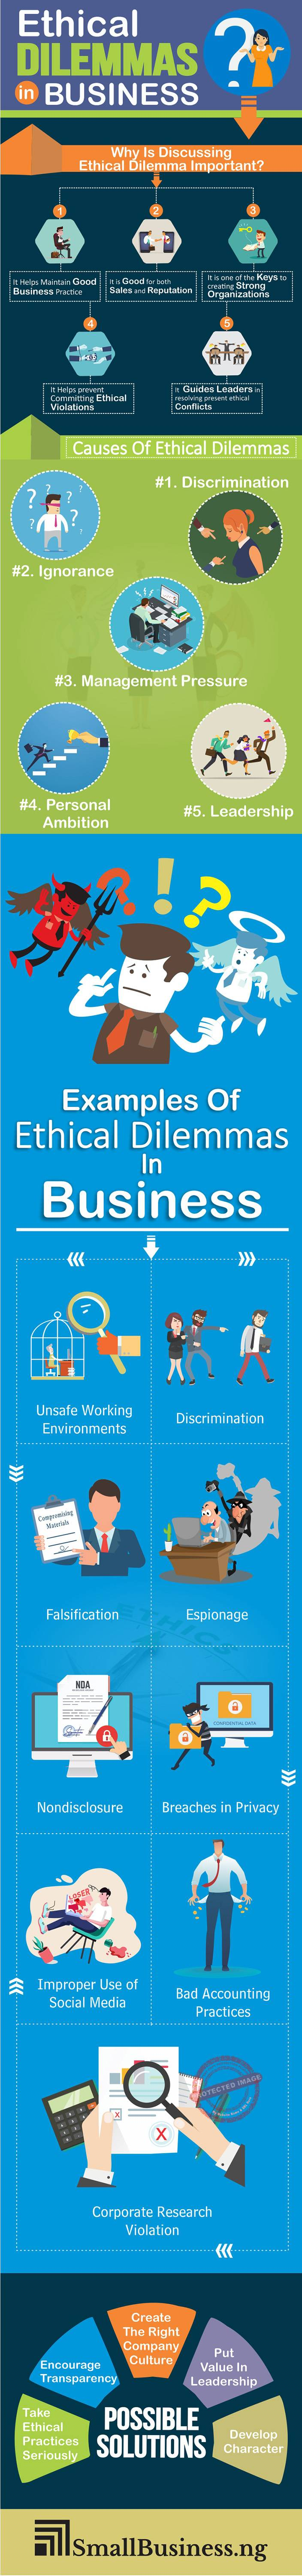 Ethical Dilemmas In Business Infographic